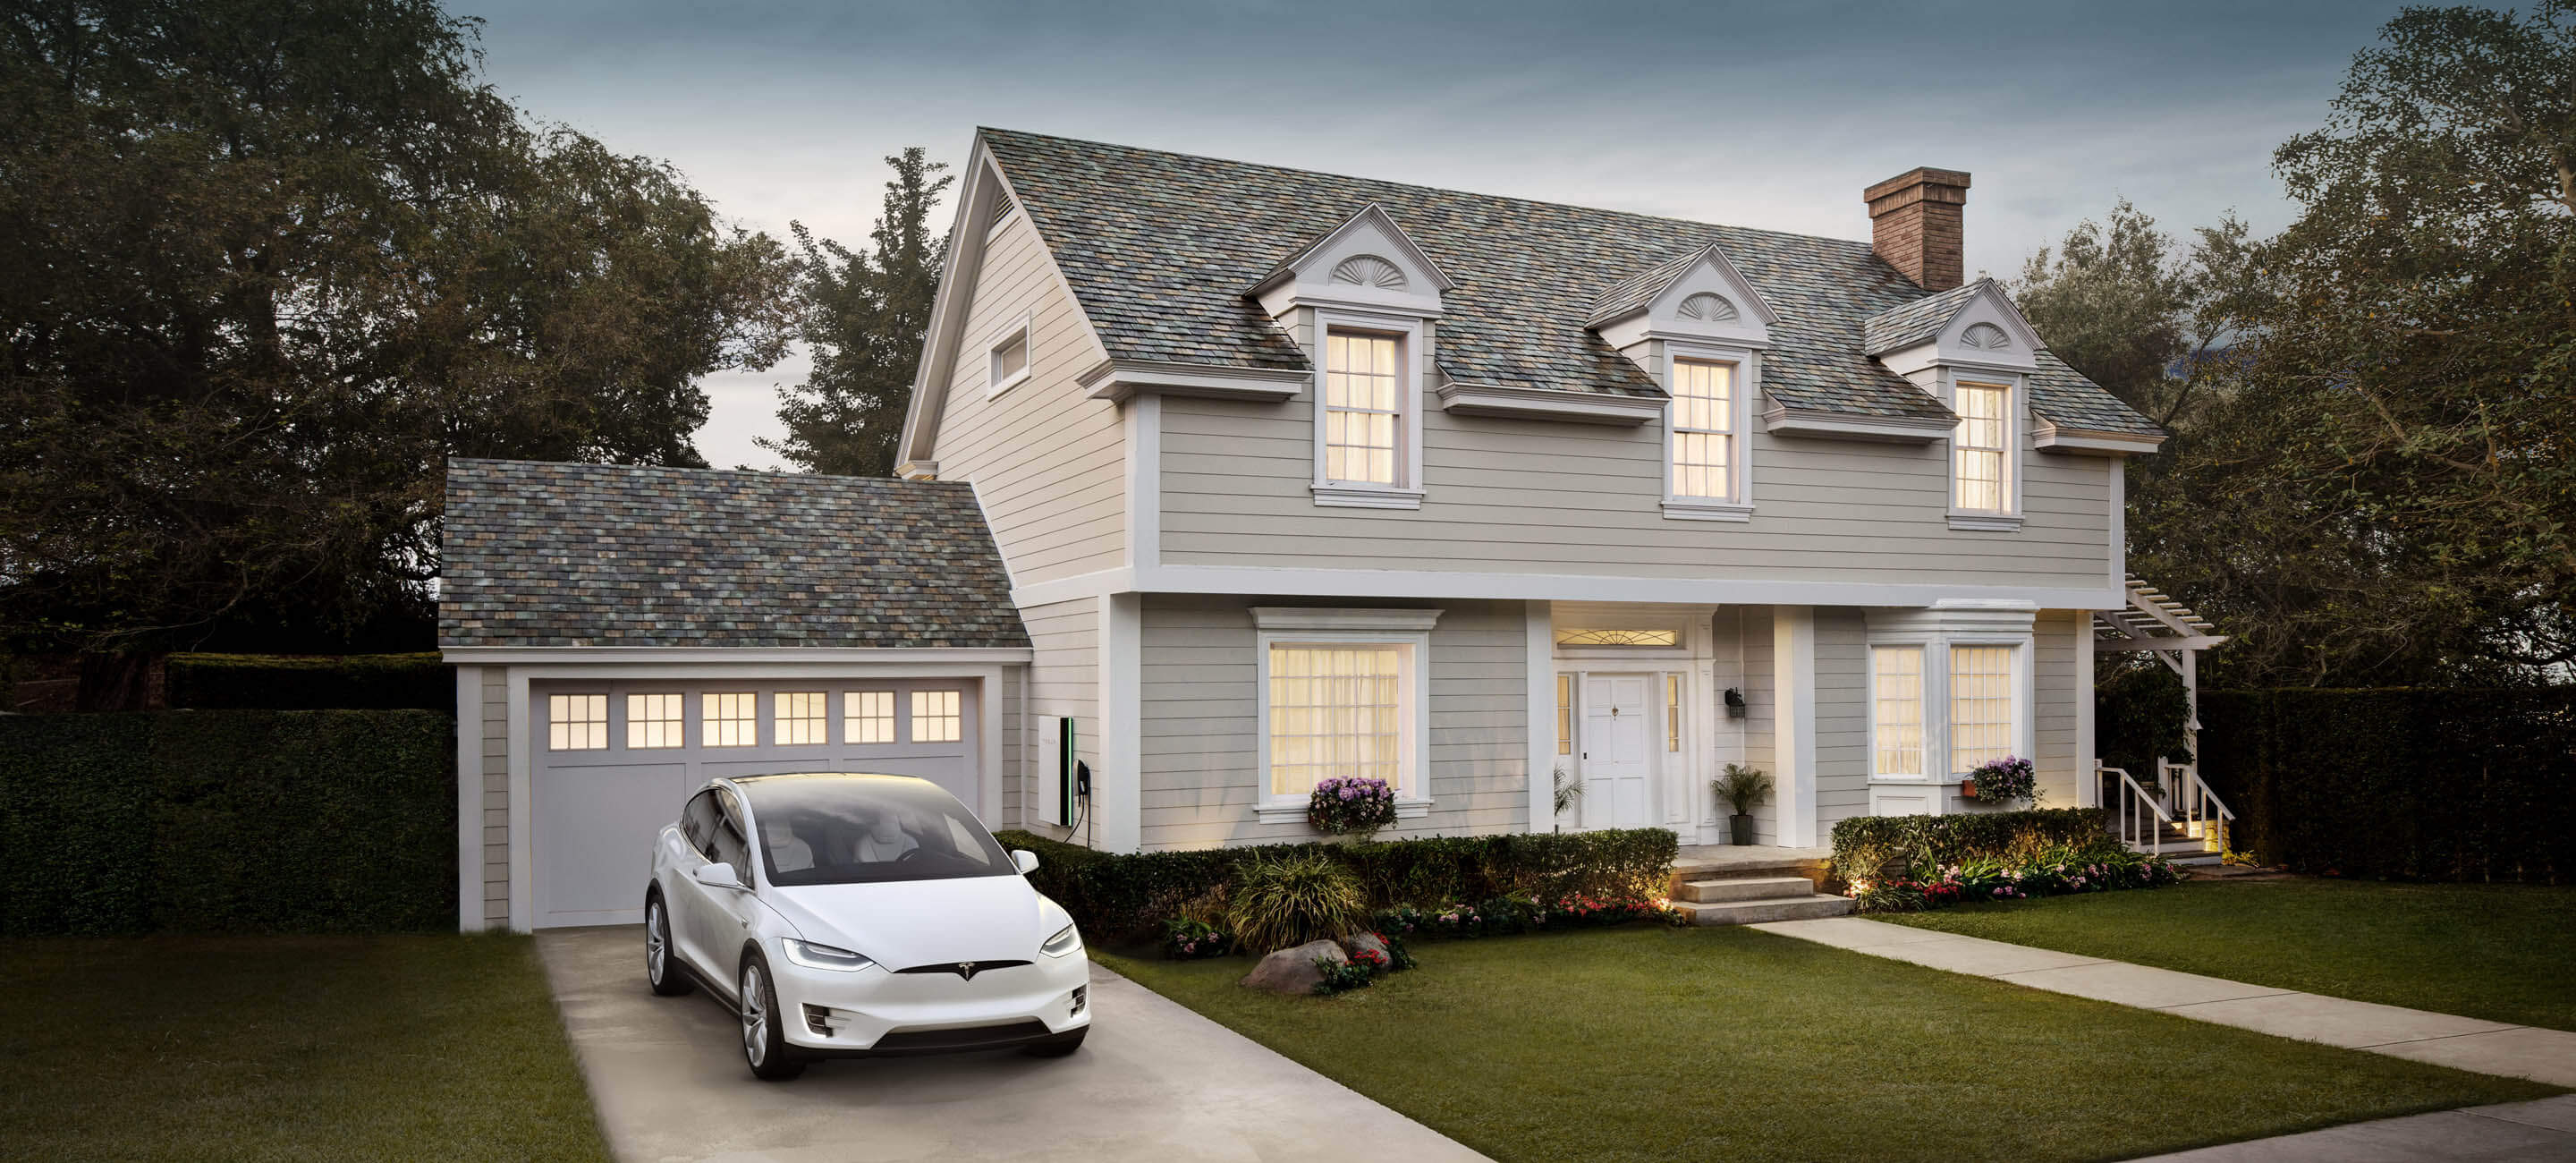 The Solar Roof Is Dying and So Is Tesla's Energy Company Dream | The Motley Fool